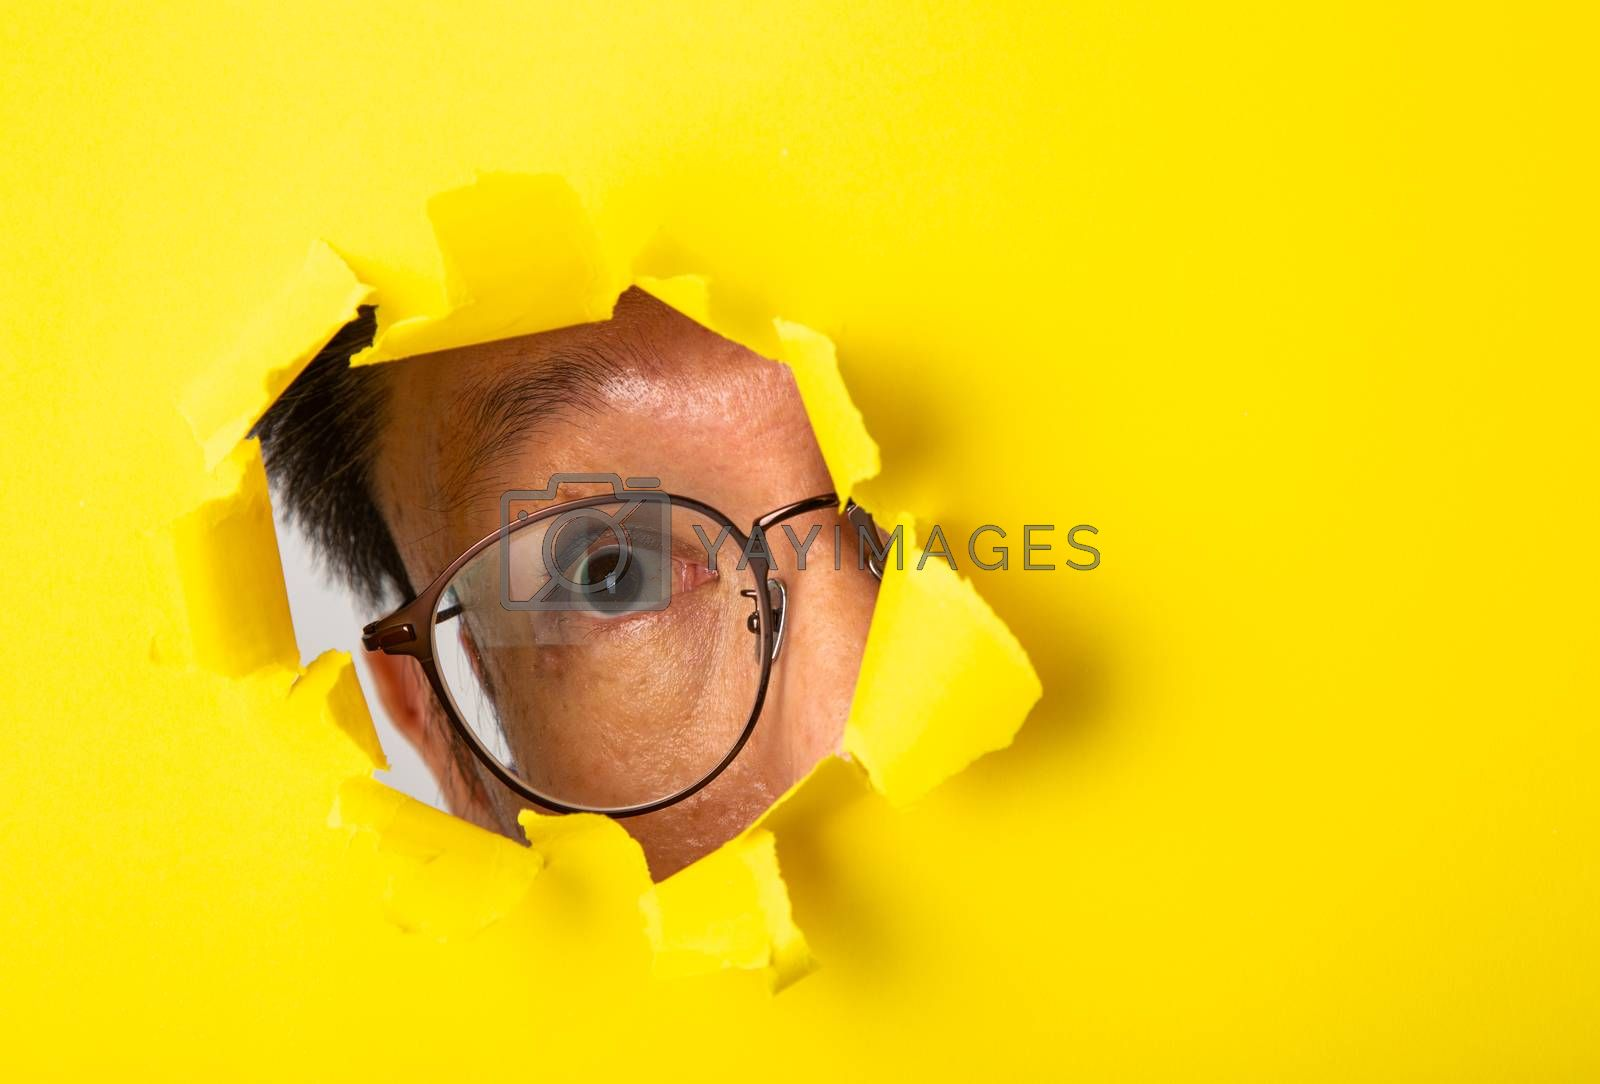 The man with spectacle peeks through a cut hole in the yellow paper background.